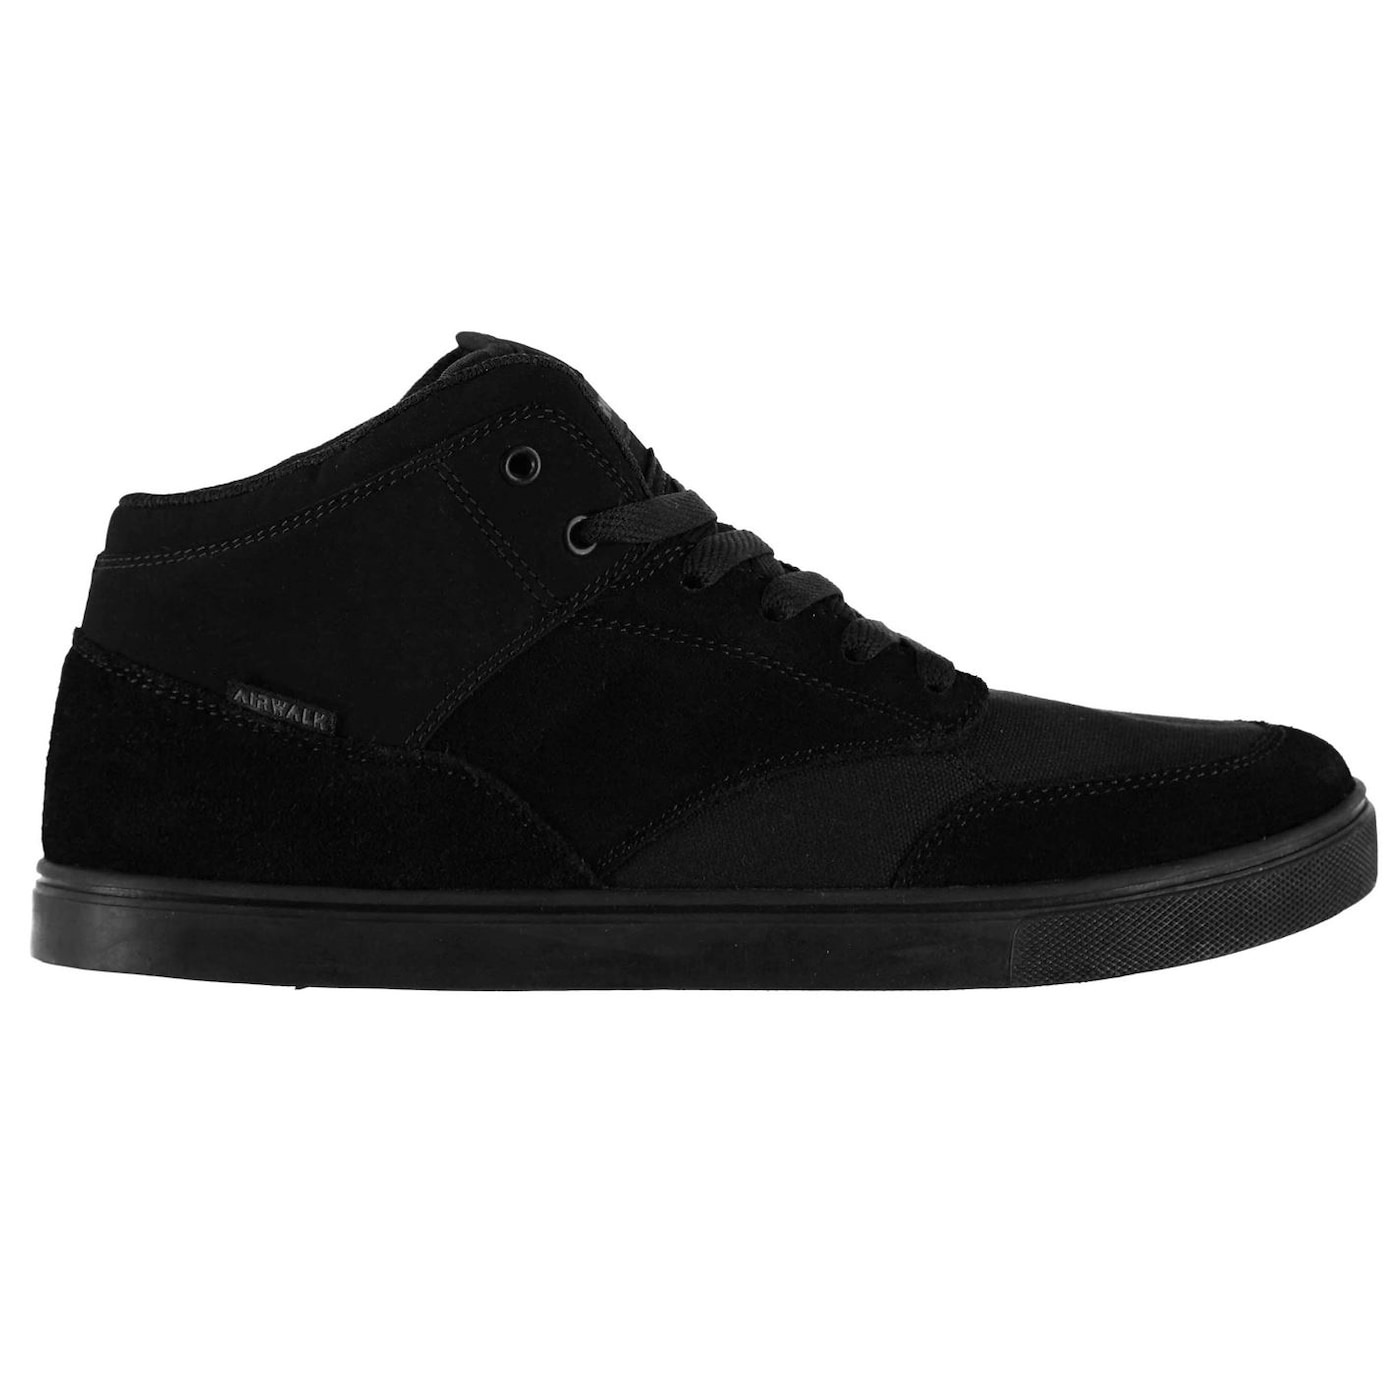 Airwalk Breaker Mid Mens Skate Shoes